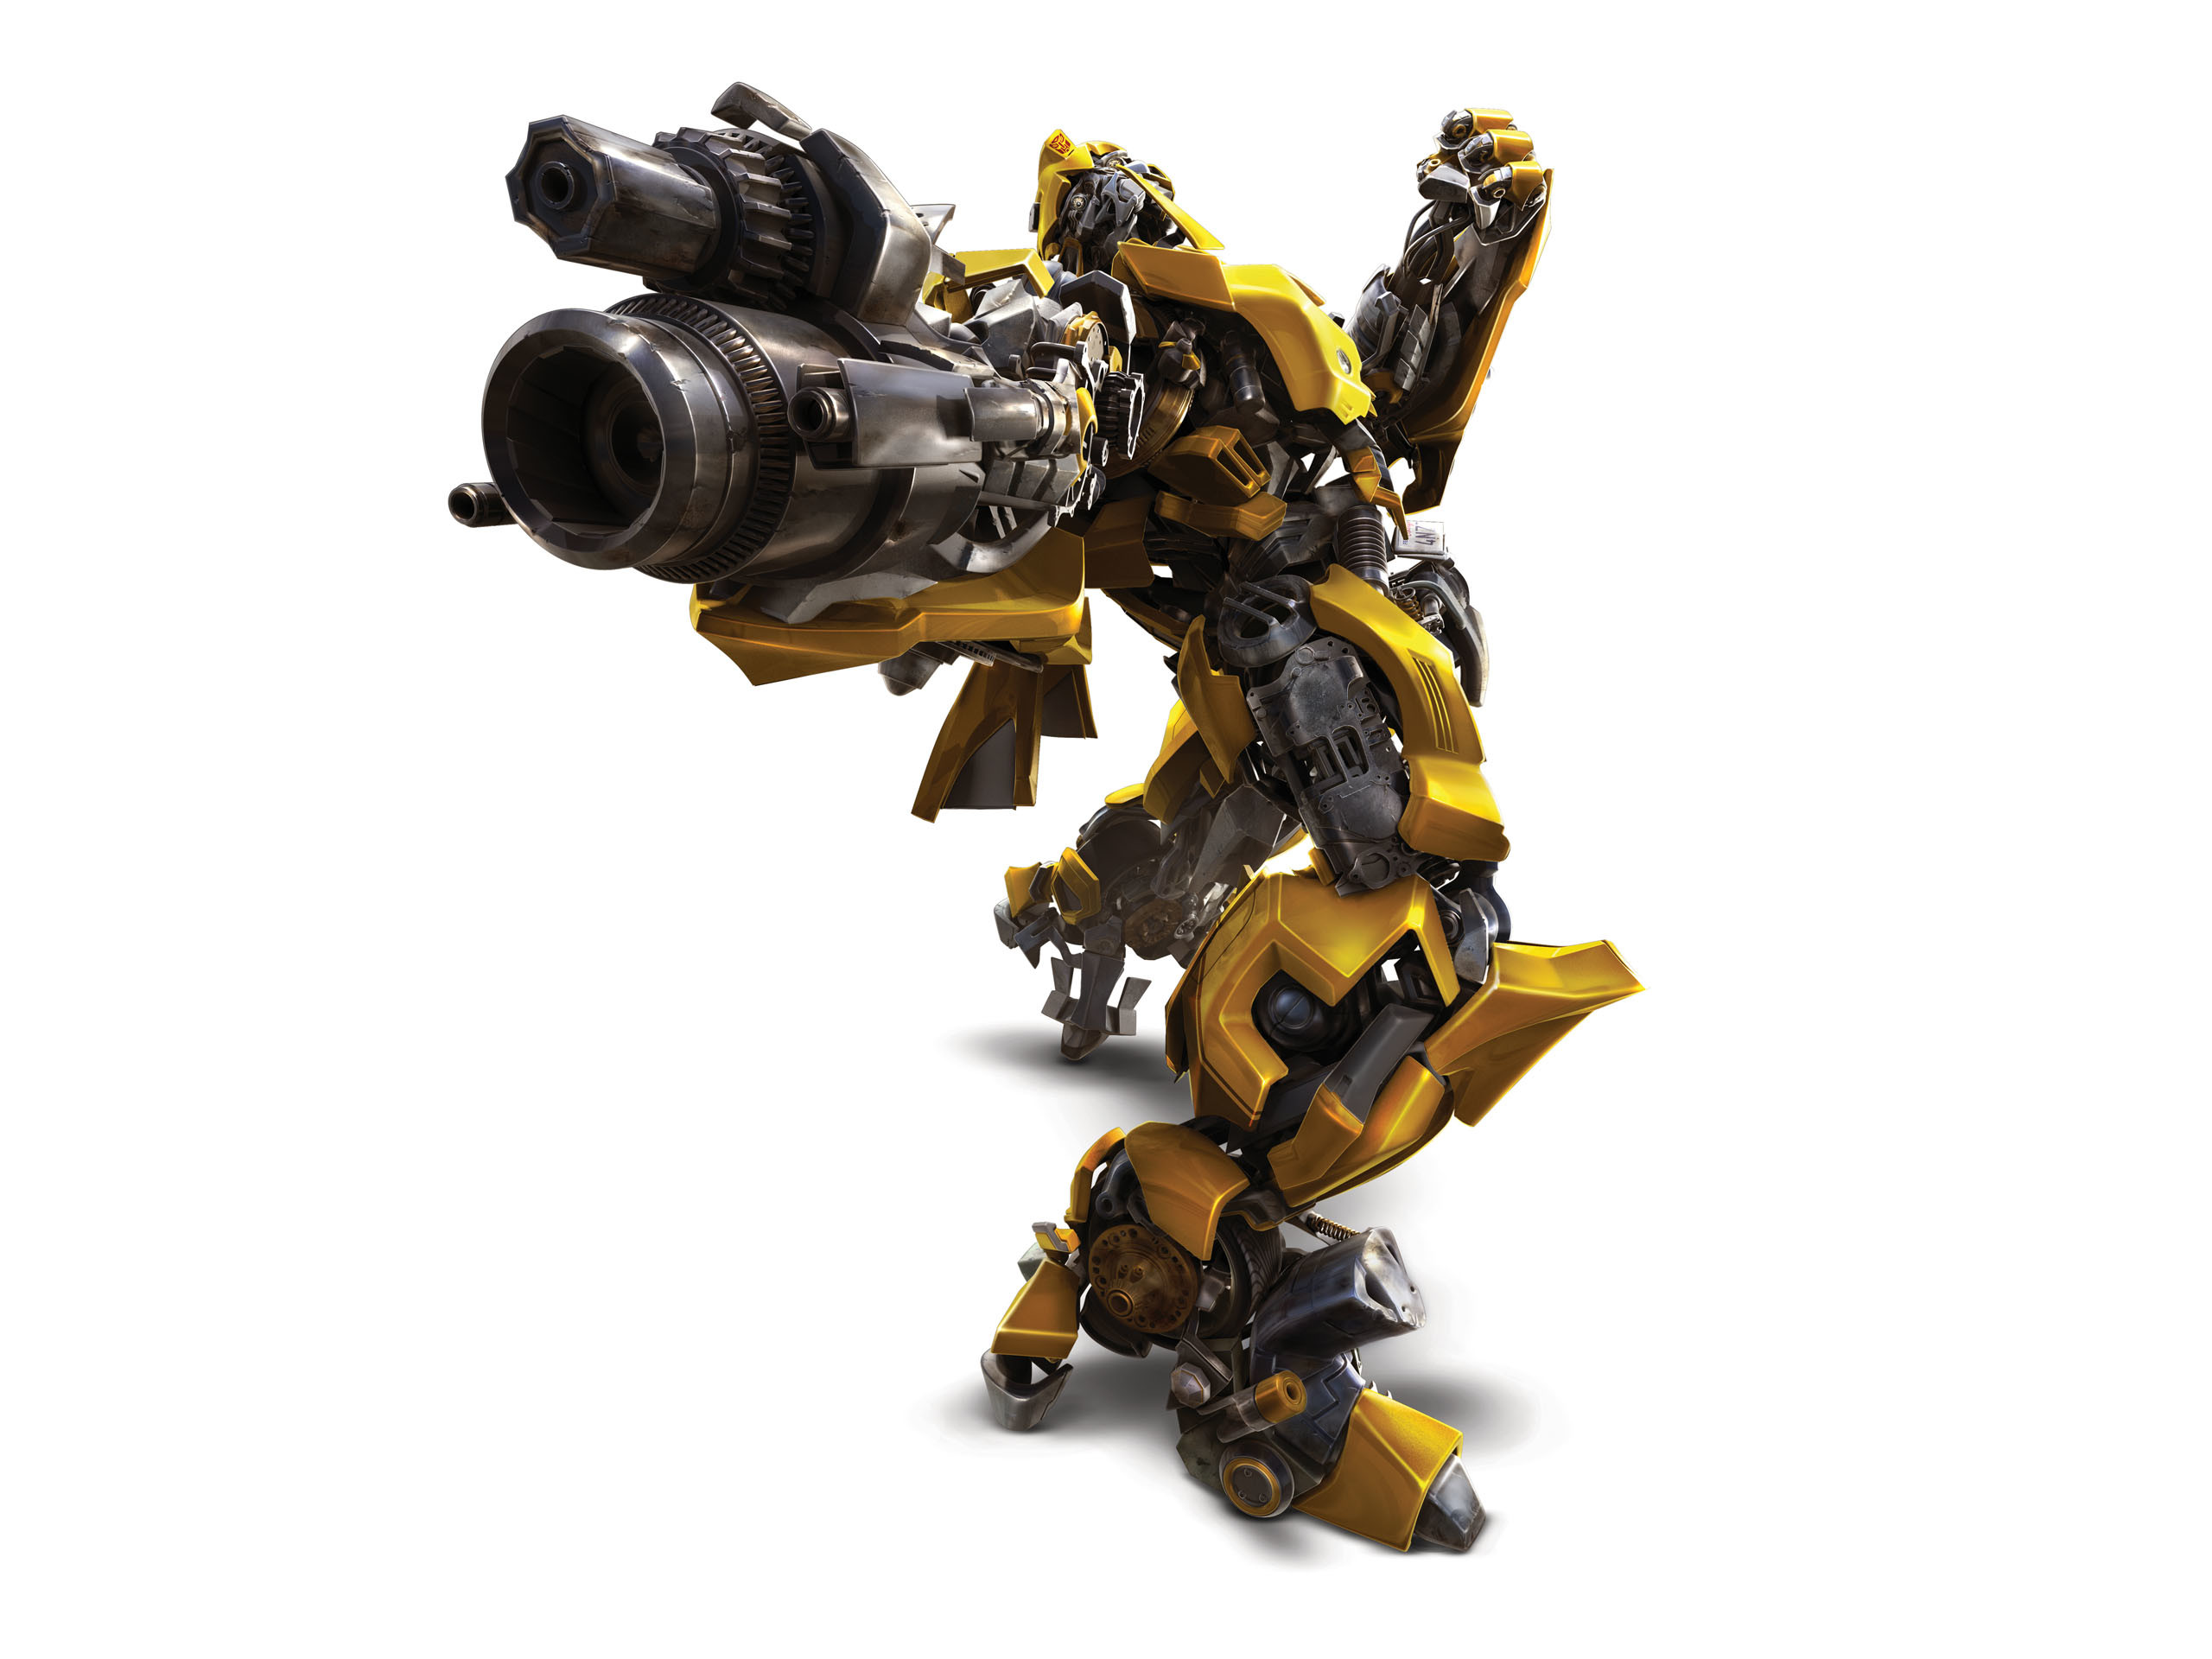 2560x1920 Bumblebee pose 1  wallpaper